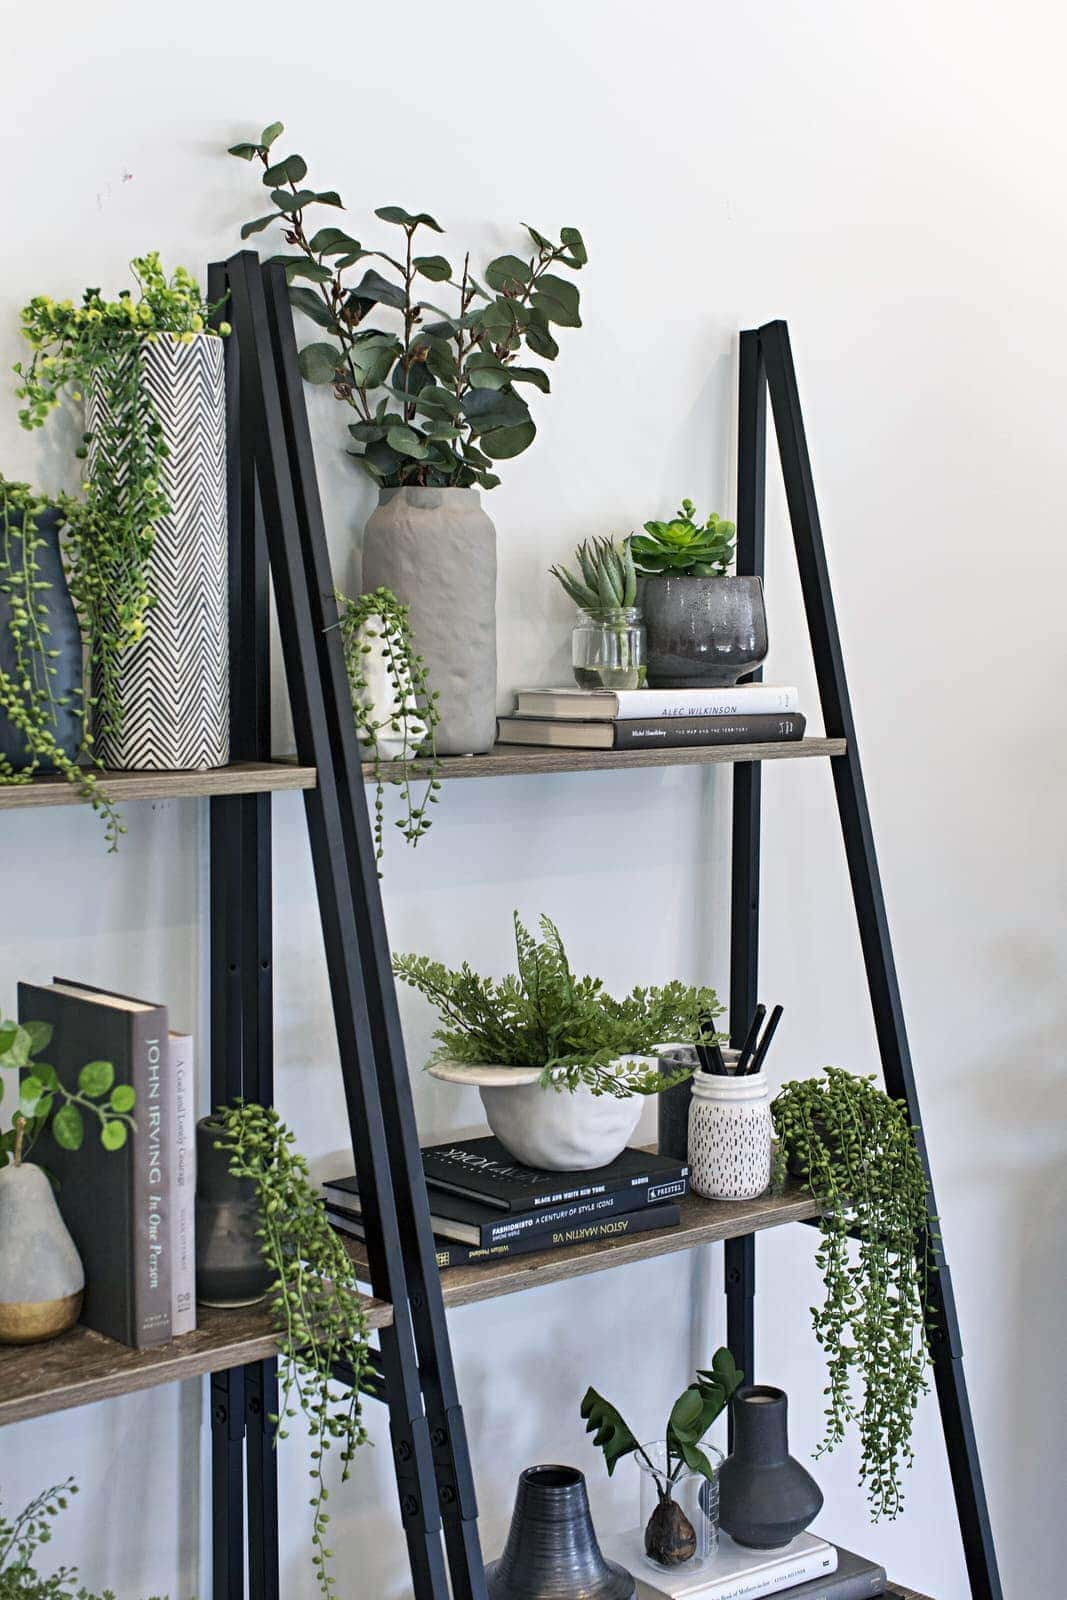 indoor vertical garden using fake plants on kmart industrial ladder shelf